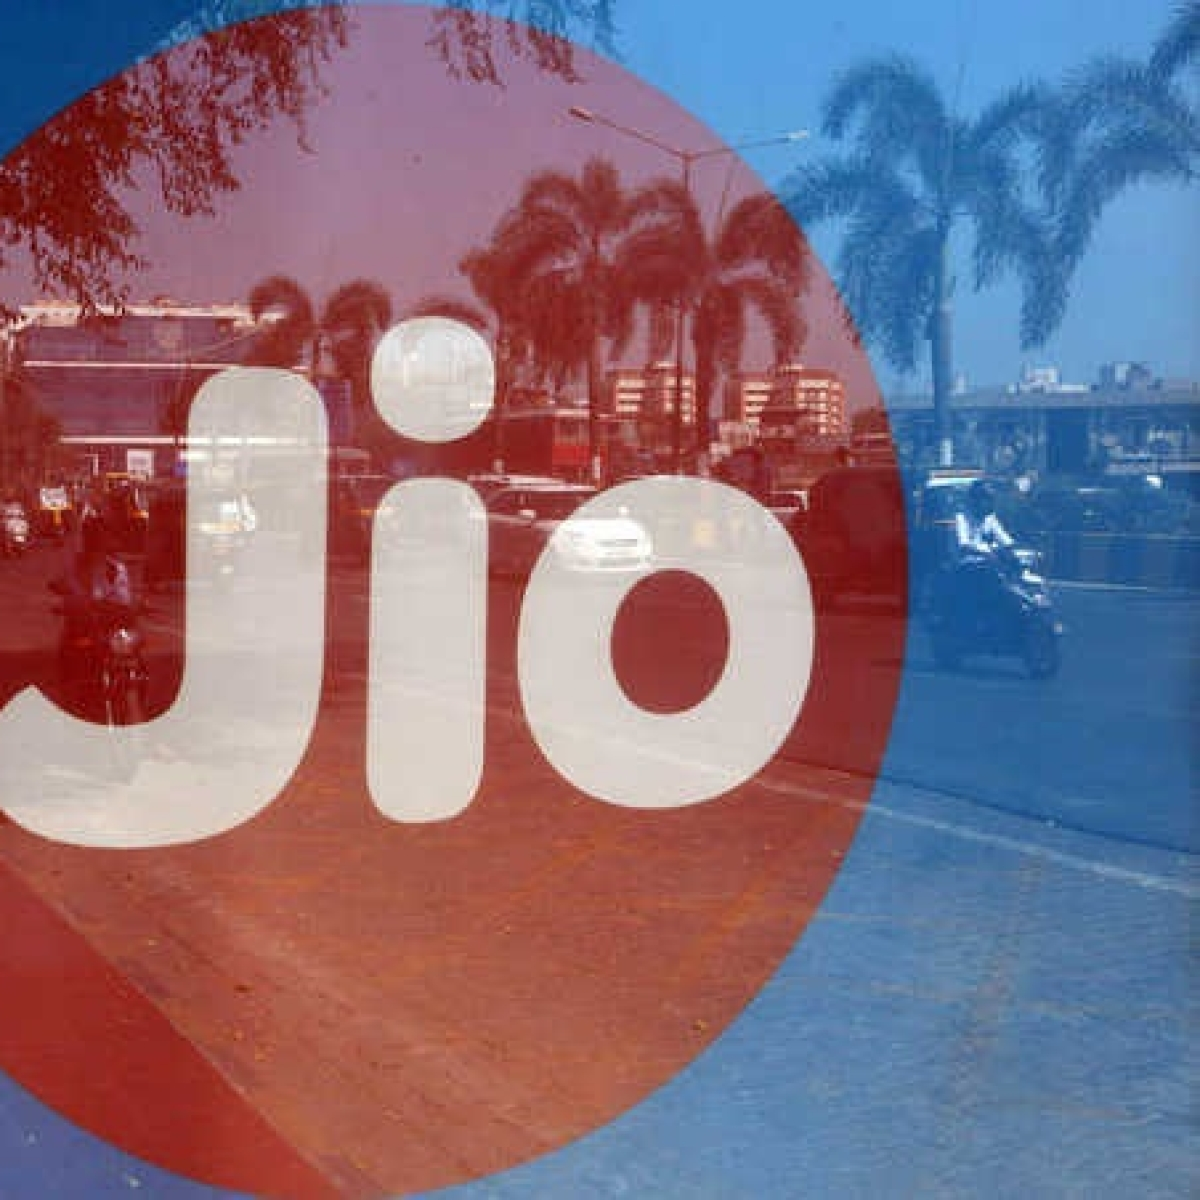 Mubadala Investment Company eyes stake in Jio Platforms: Source